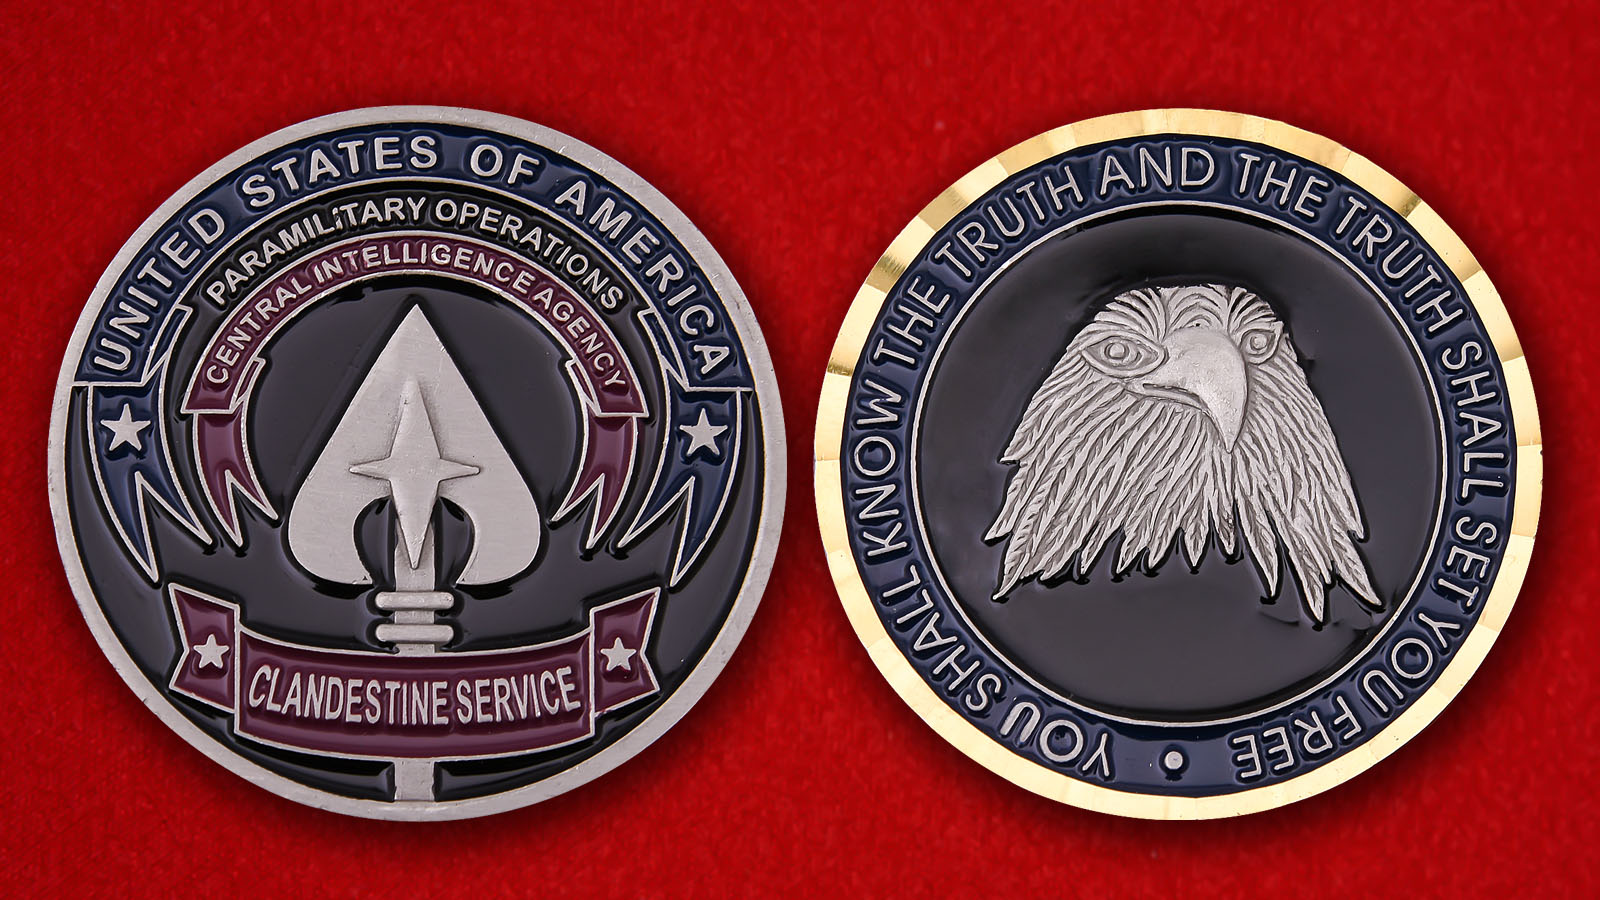 Clandestine service CIA Challenge Coin - obverse and reverse